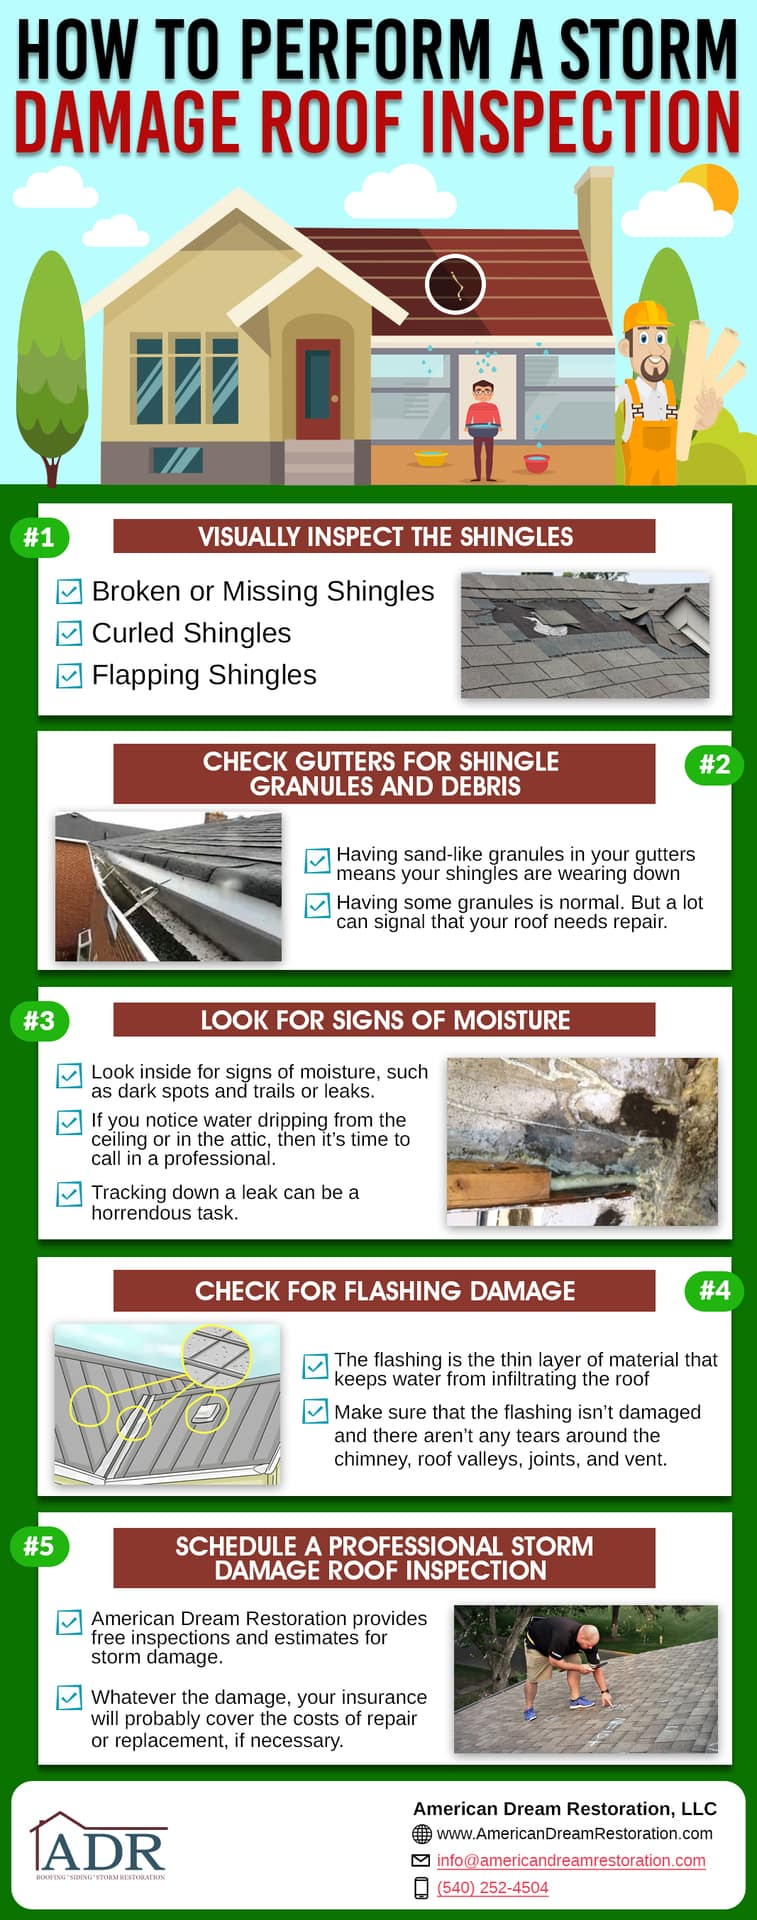 Check Out Our Storm Damage Checklist Infographic!